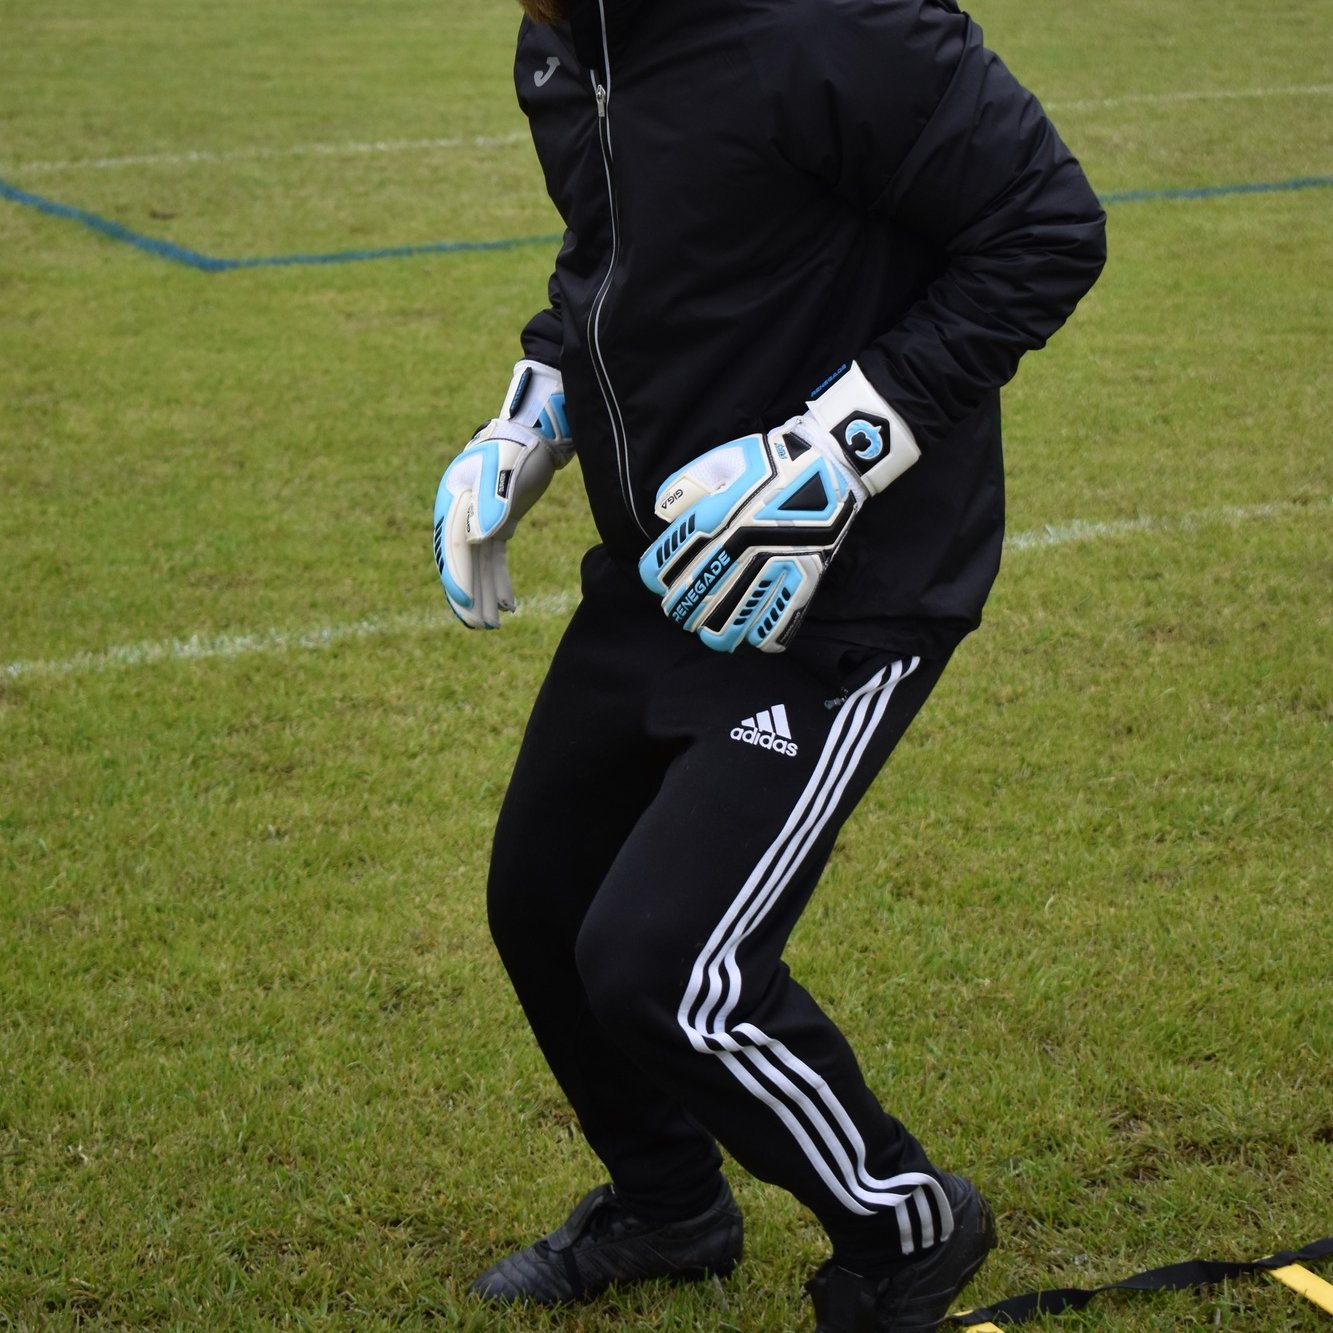 How to stay warm as a goalkeeper in the winter months